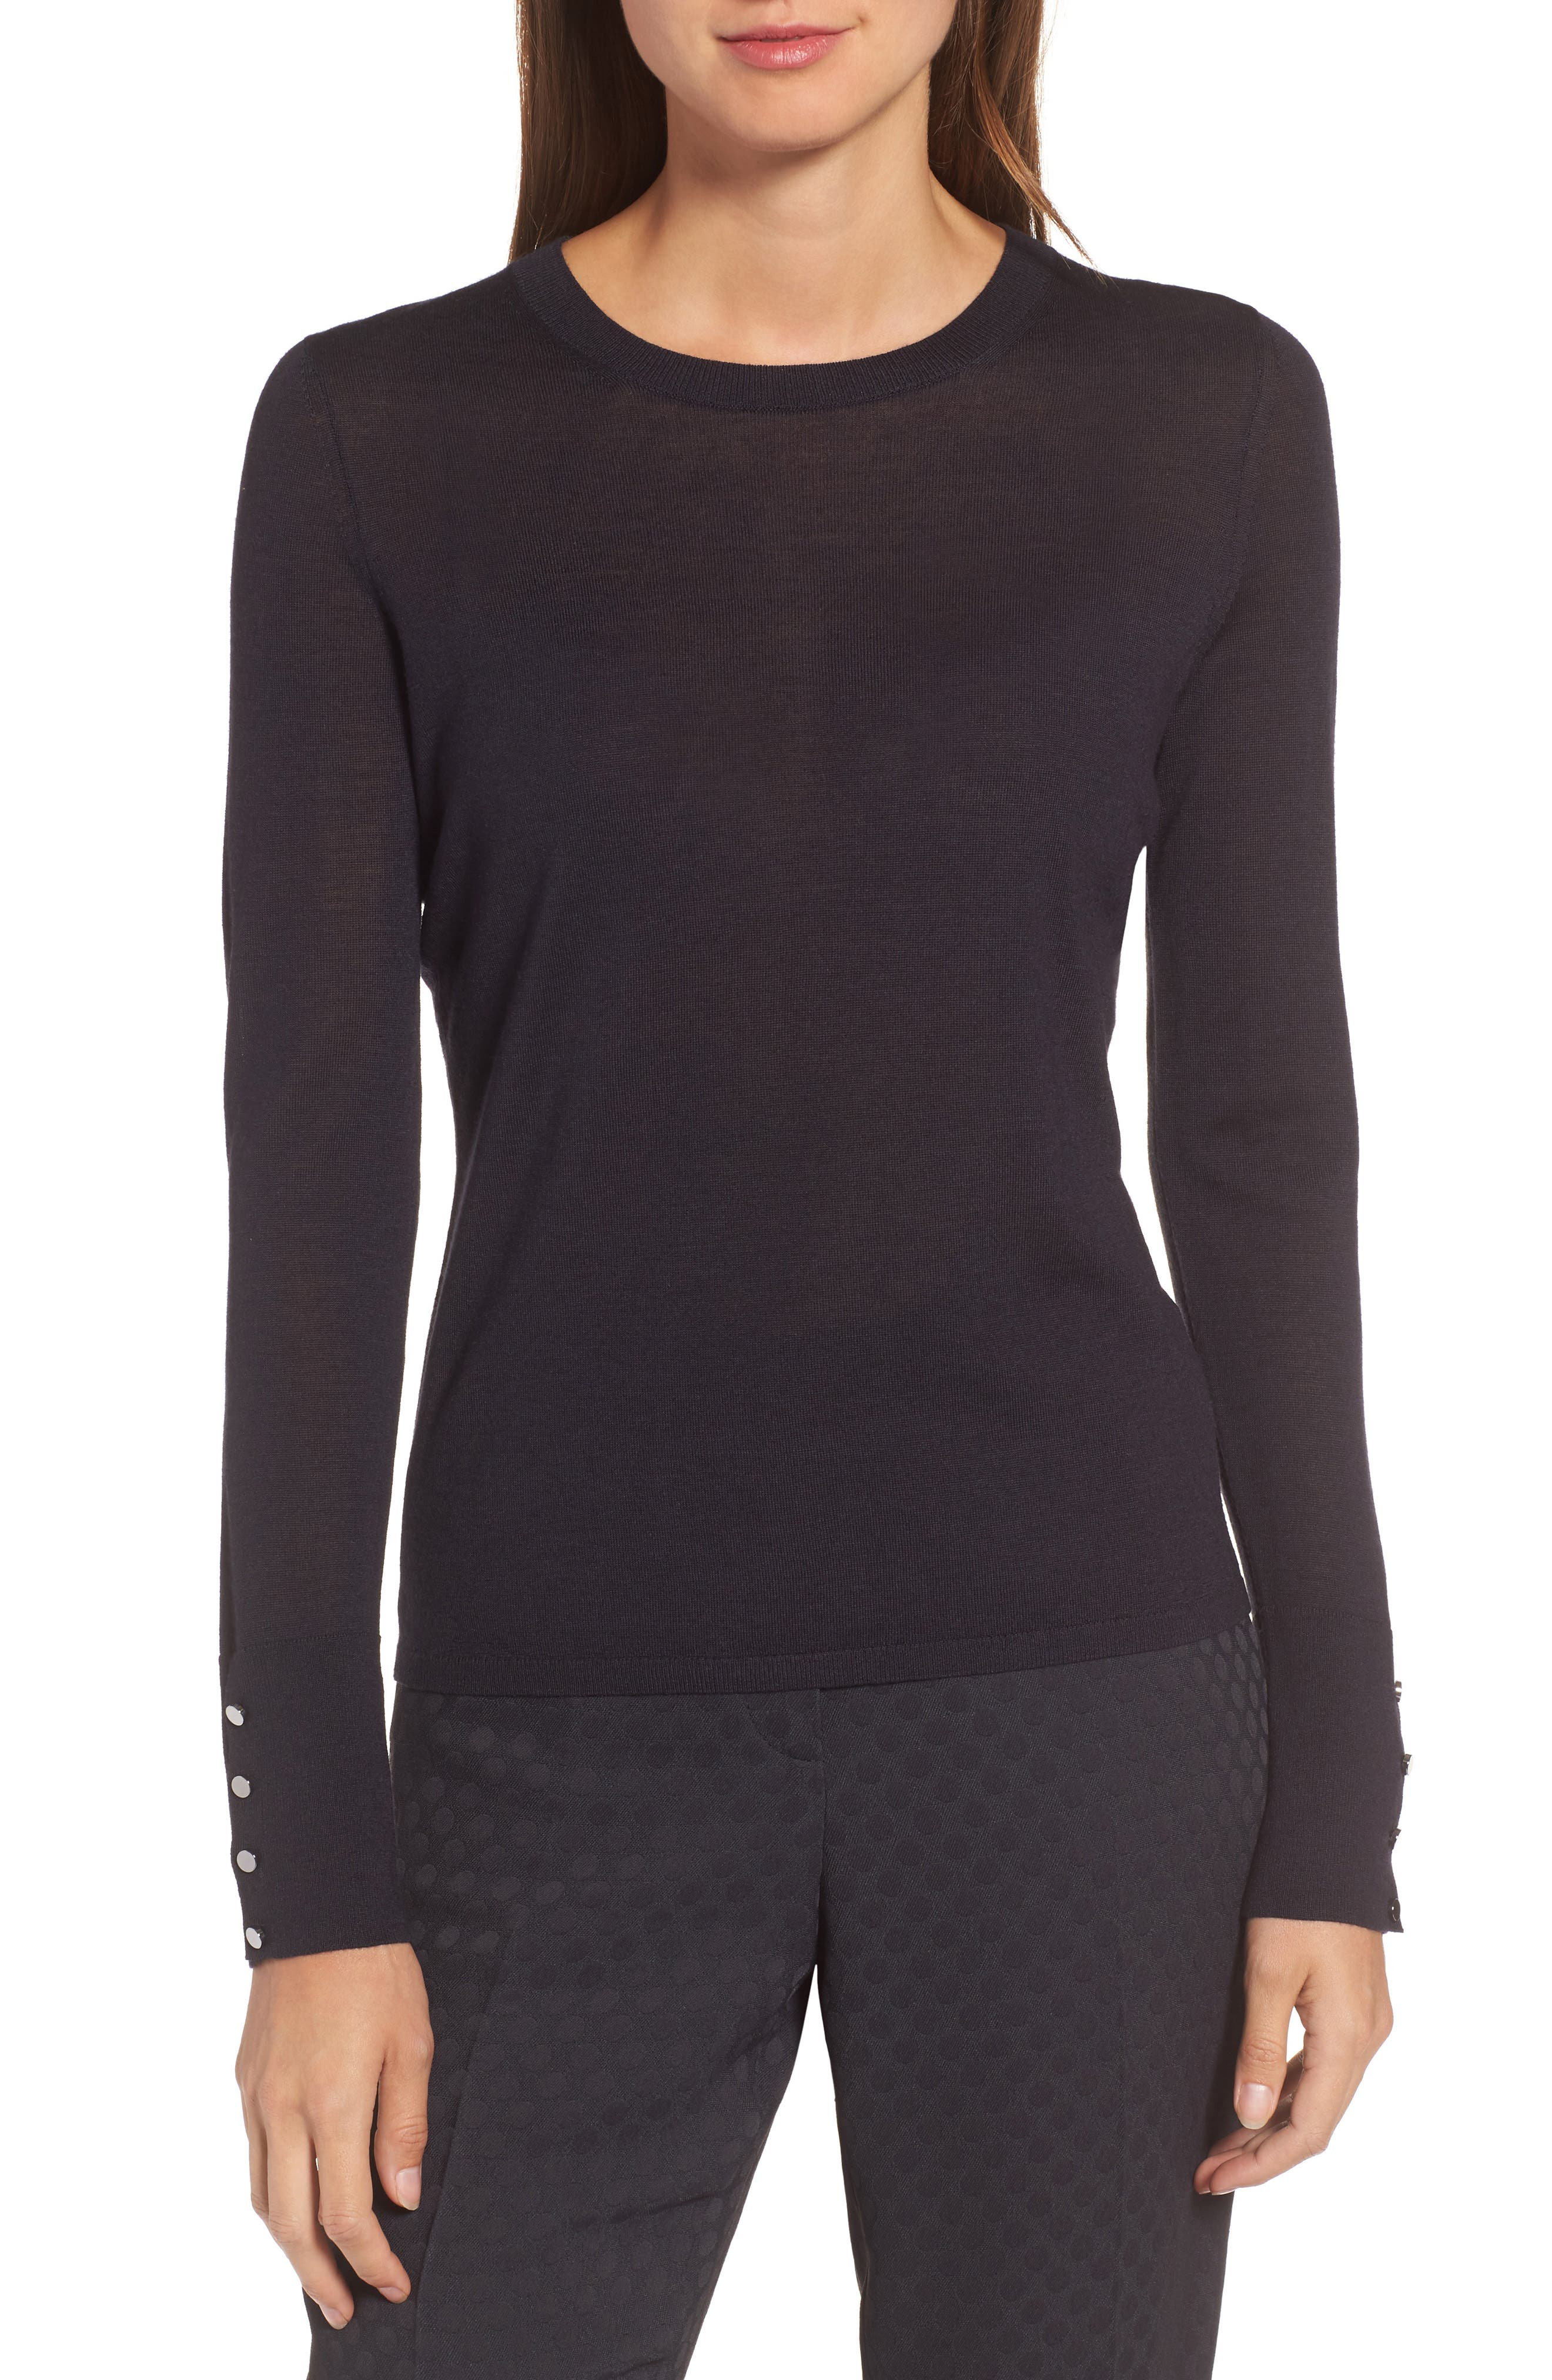 Alternate Image 1 Selected - BOSS Frankie Cuff Detail Wool Sweater (Nordstrom Exclusive)